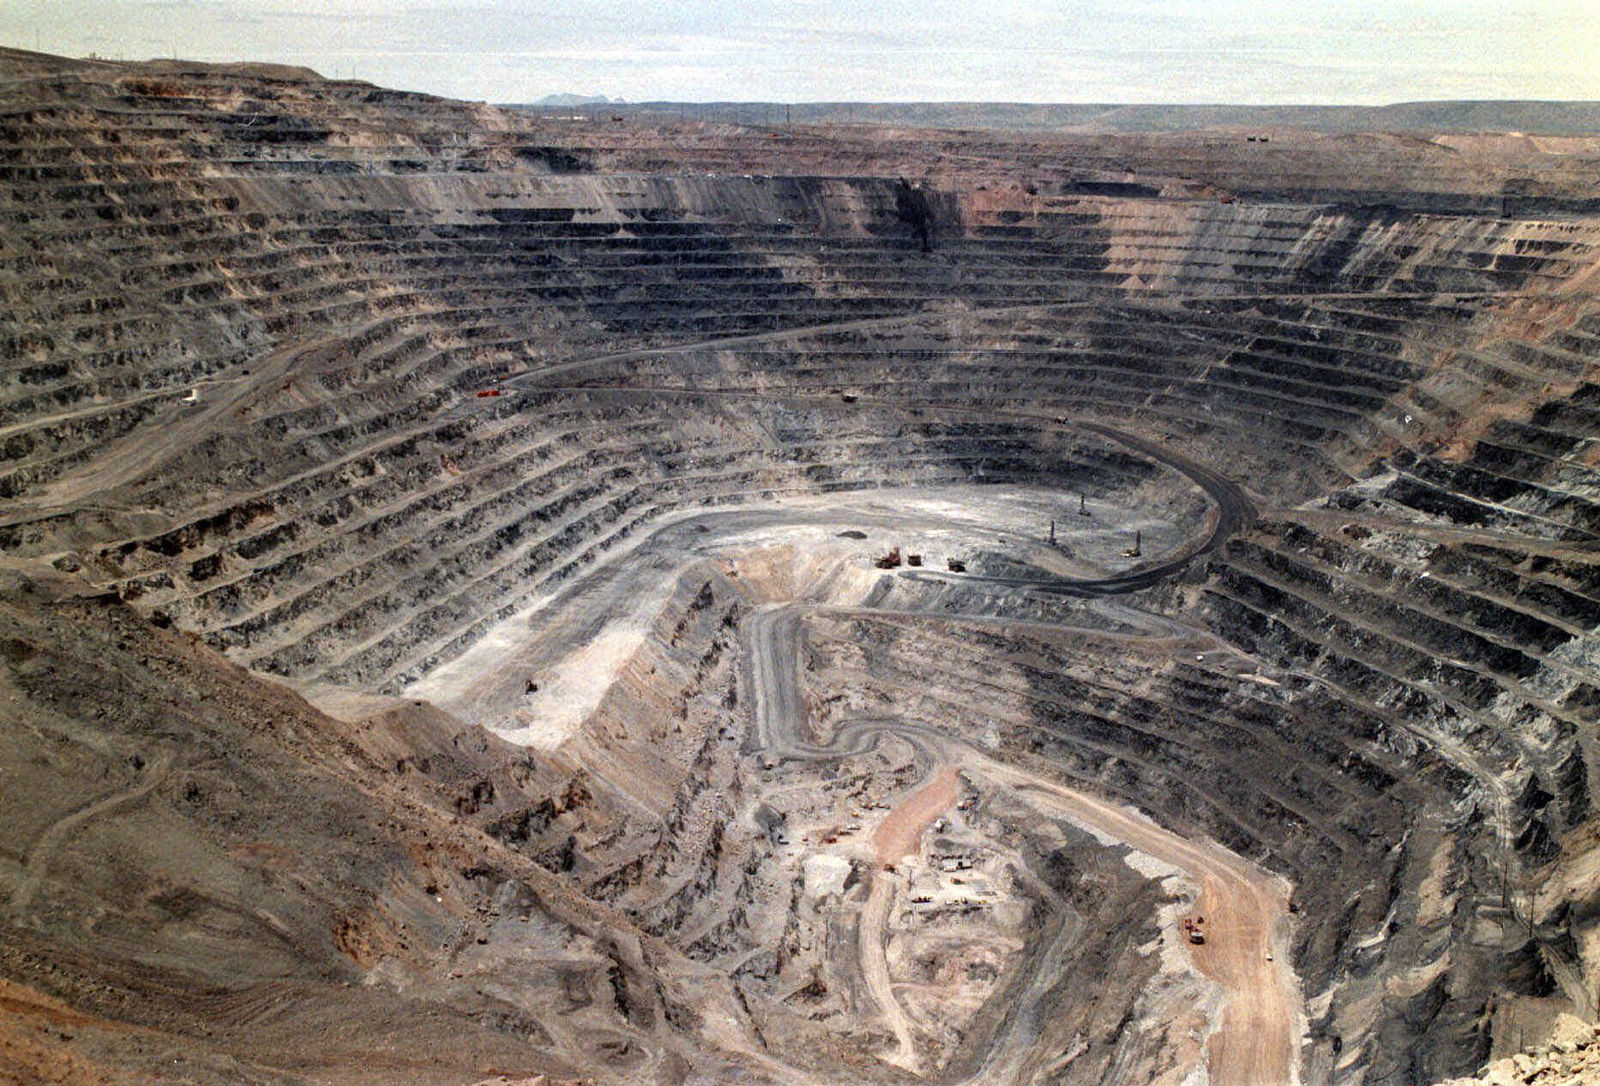 FILE - This undated file photo shows Barrick Goldstrike Mines' Betze-Post open pit near Carlin, Nev.{ } (Adella Harding/The Daily Free Press via AP, File)